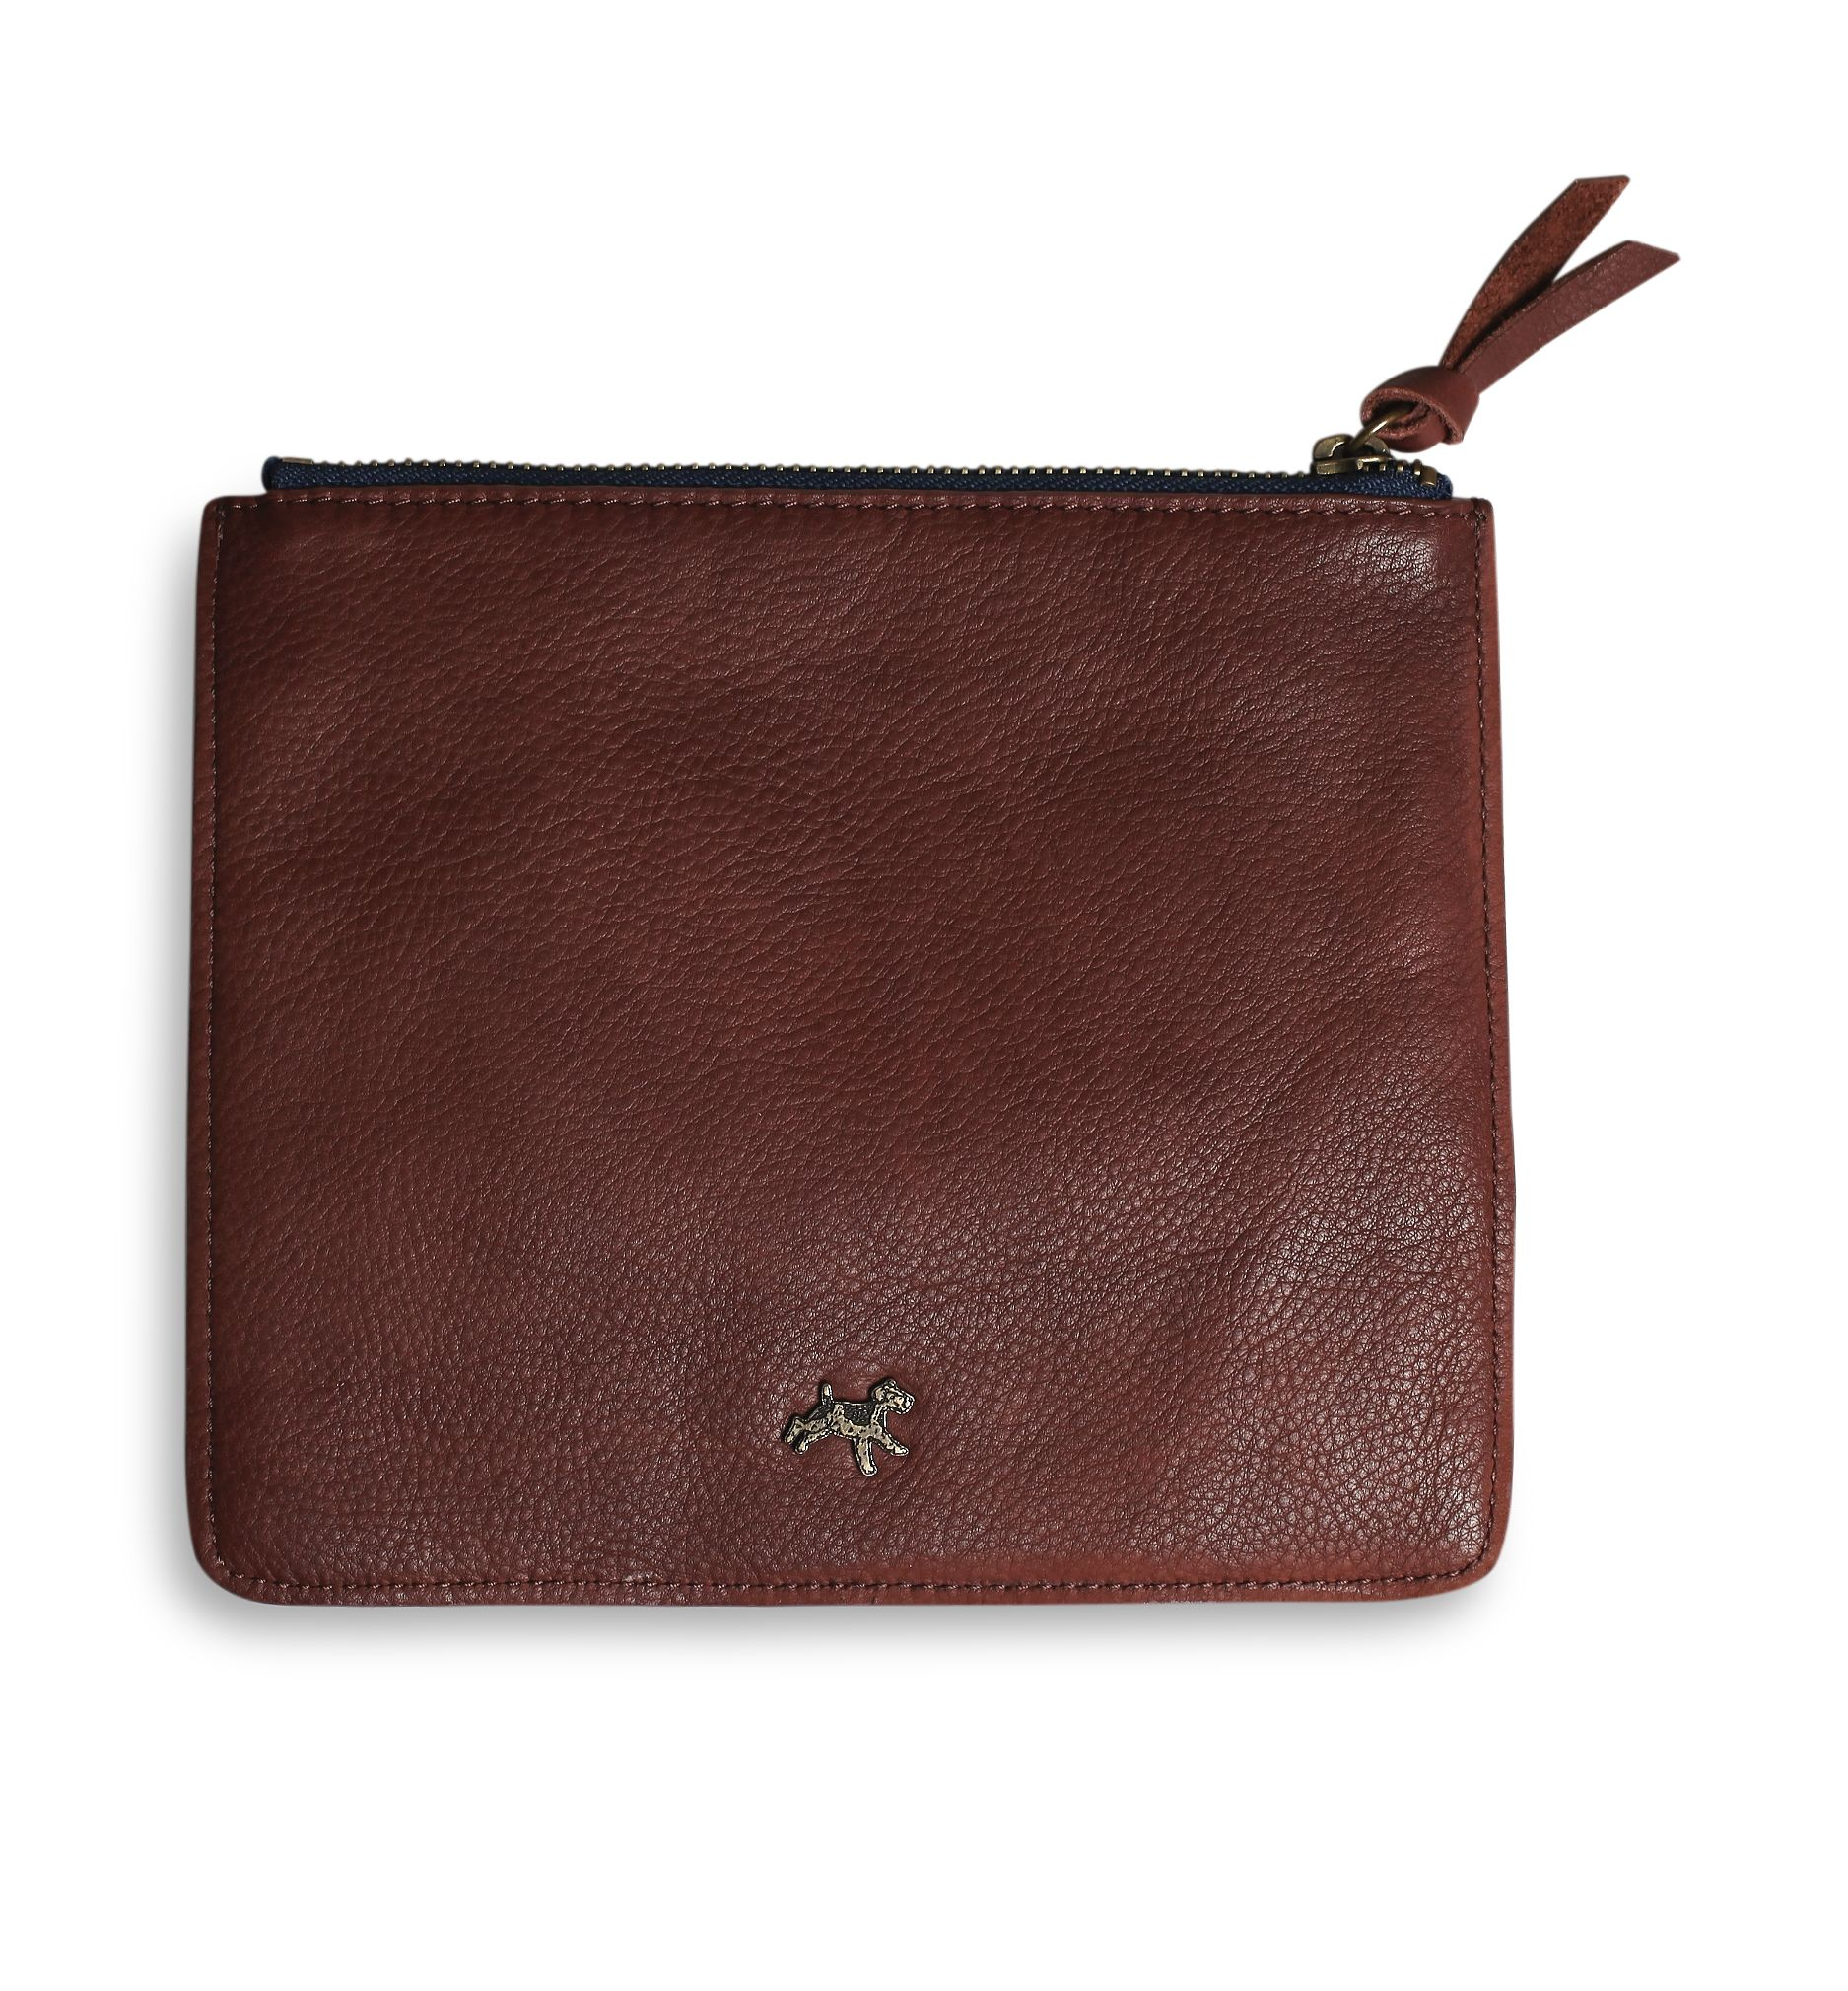 Leather zip pouch in chocolate